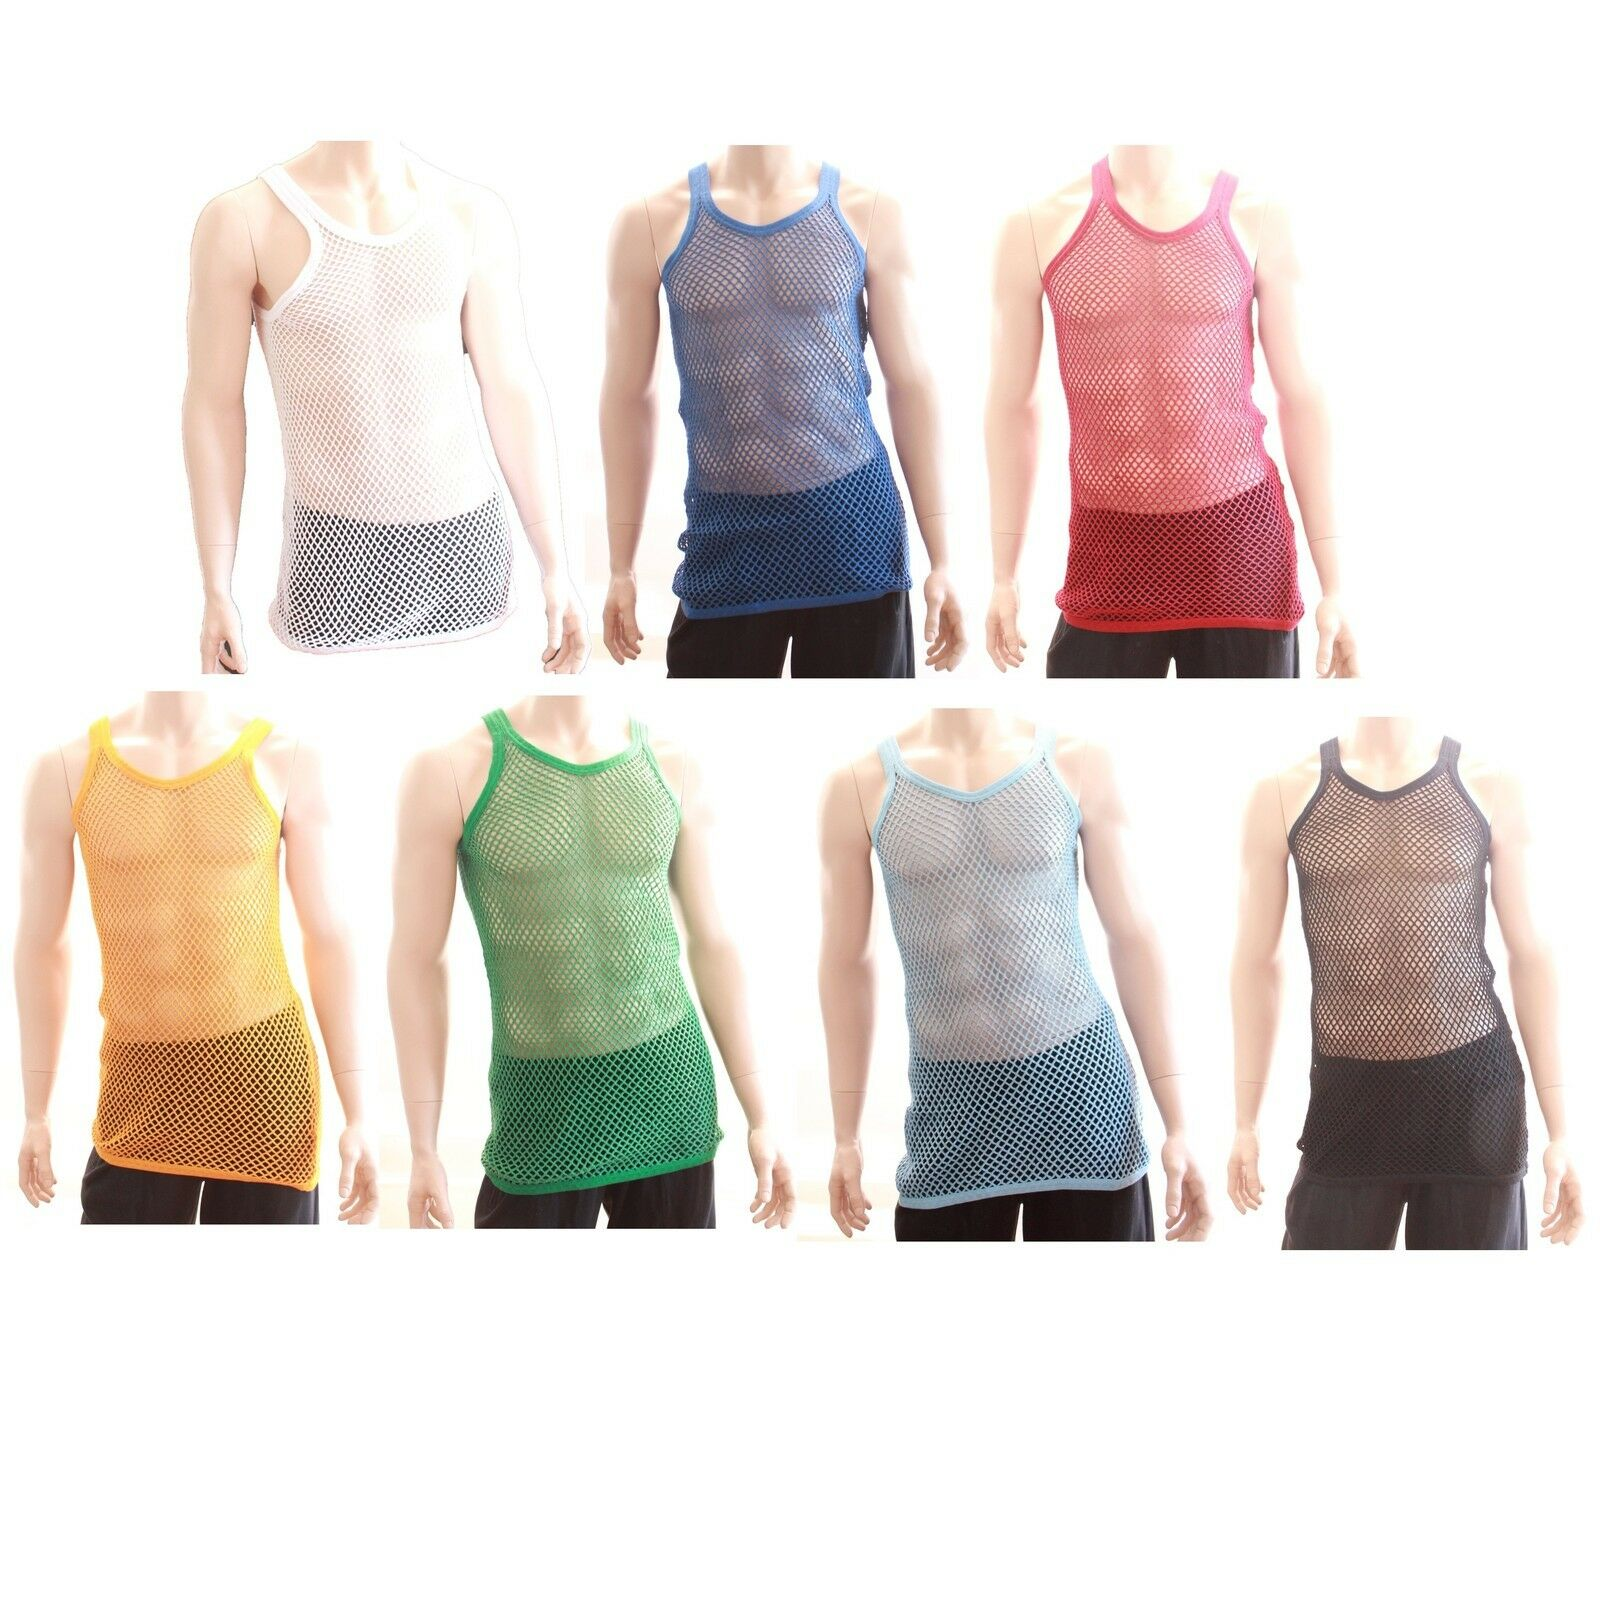 24 x 100% Cotton Fishnet Mesh Hole  String Muscle Singlet Vest  WHOLESALE JOB LOT  world famous sale online